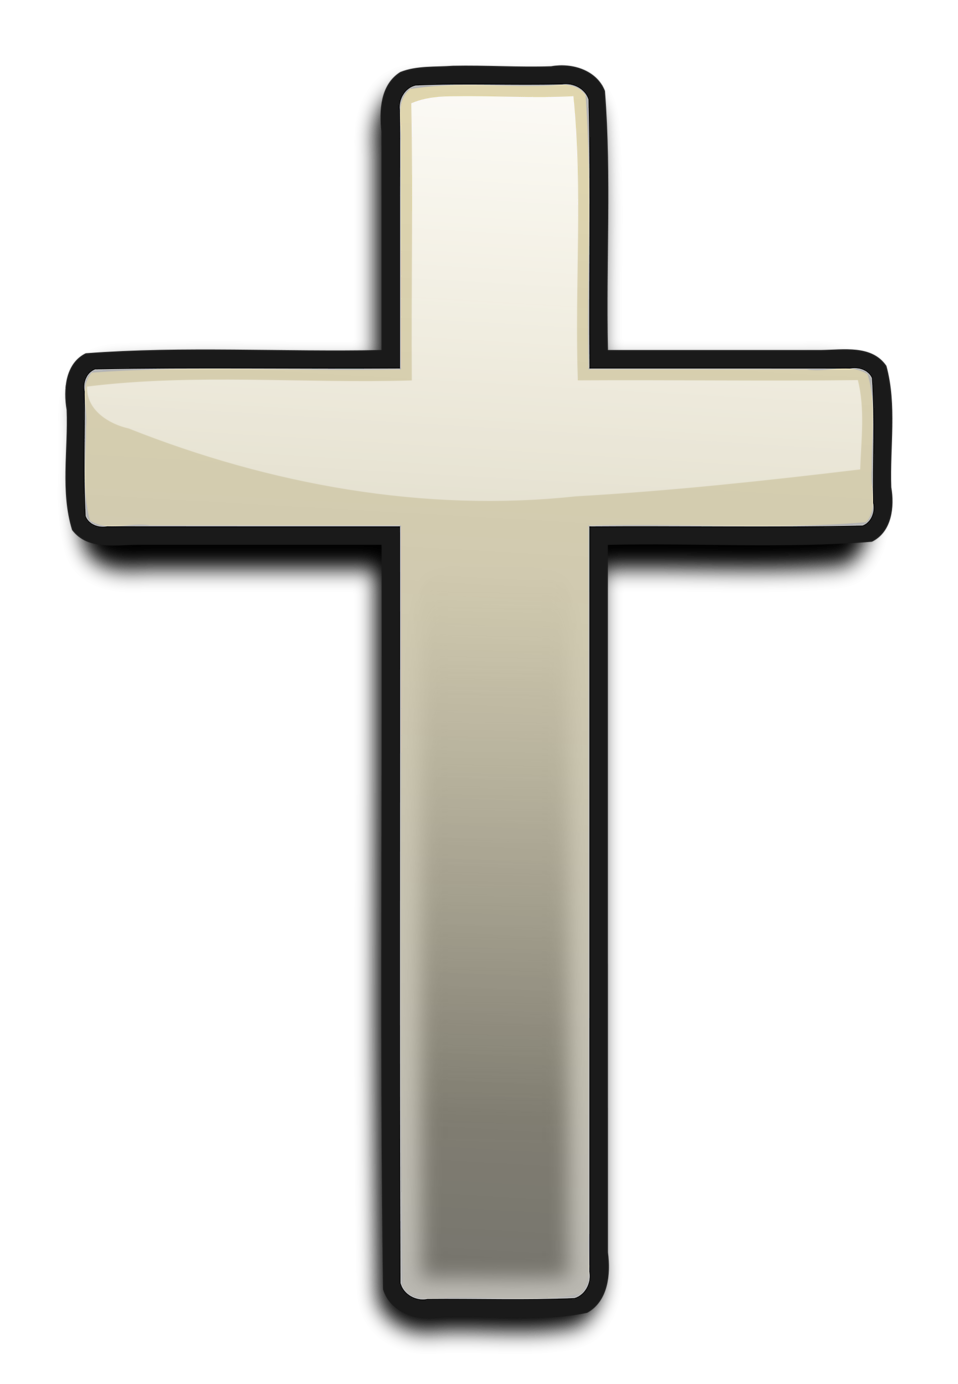 Cross   Free Stock Photo   Illustration Of A White Cross     16546